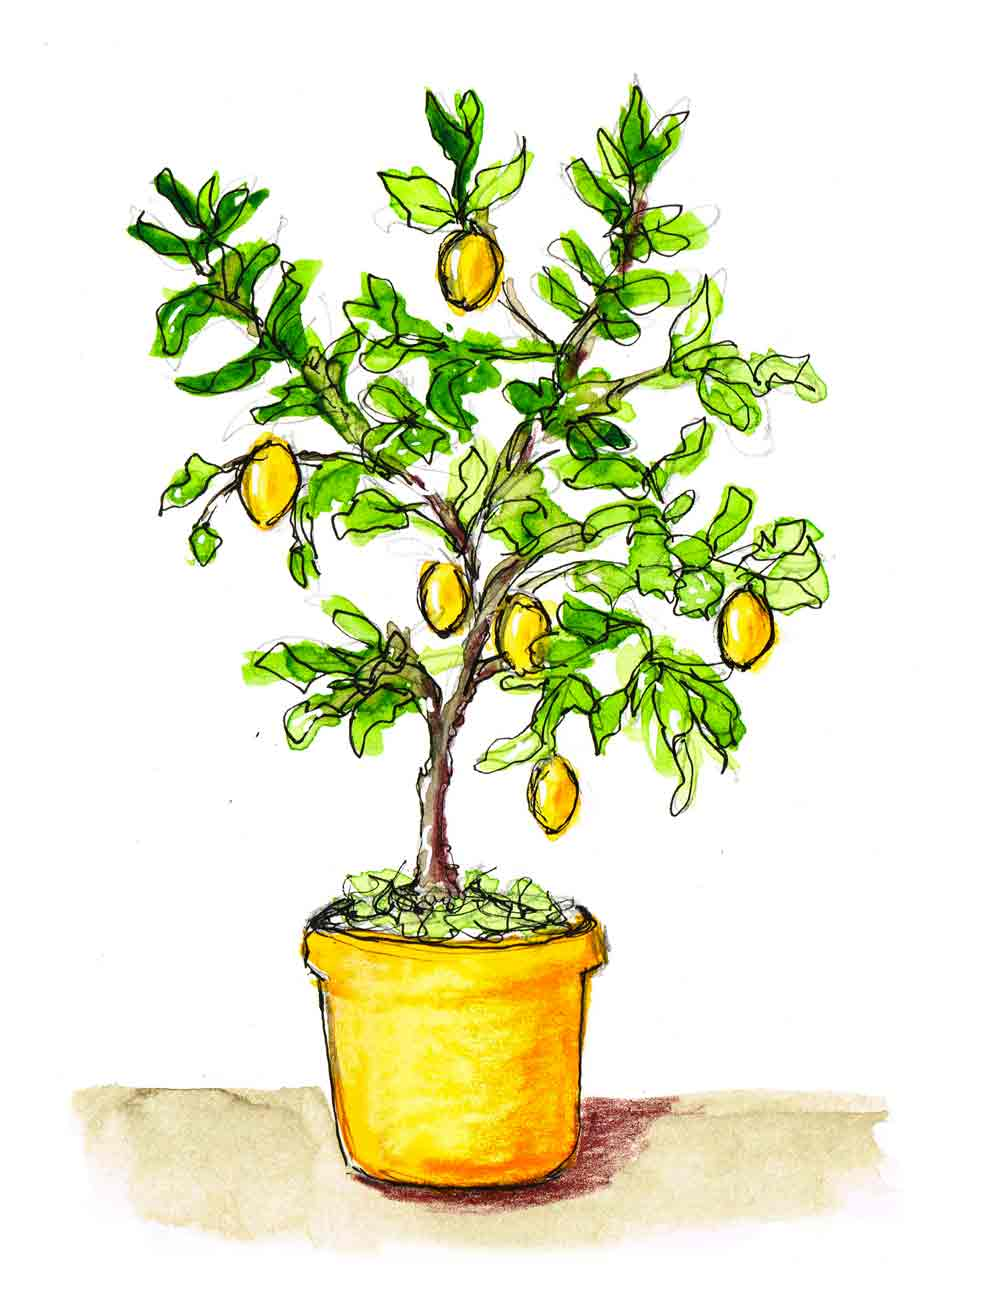 Lemon-Tree-Plants-in-pots-no-4-kw.jpg